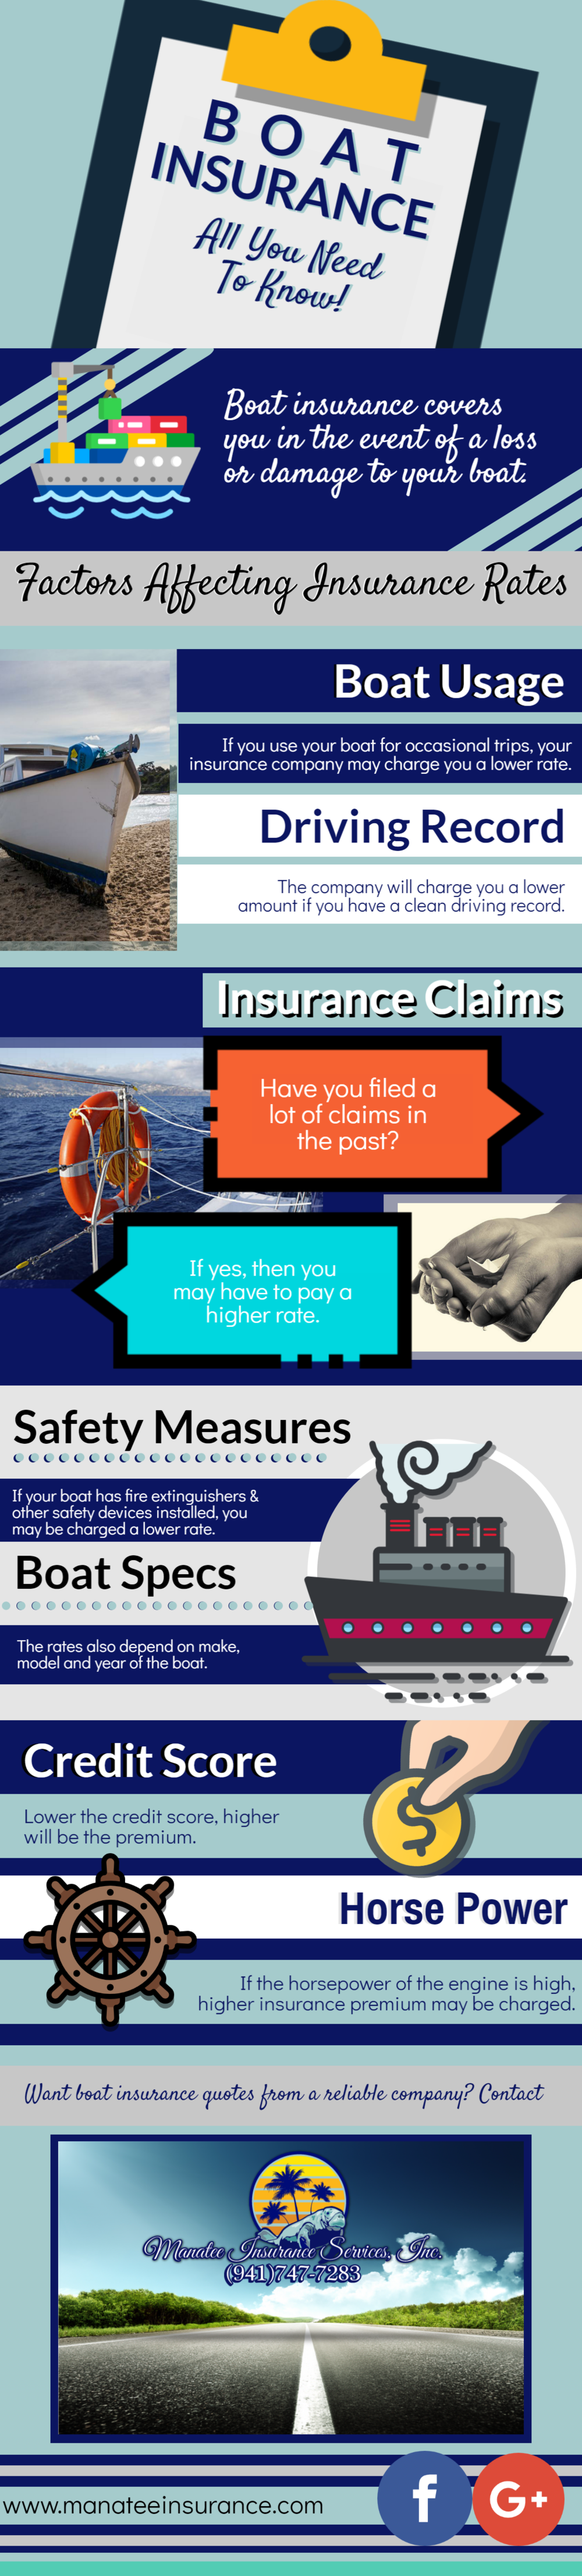 Infographic_manateeinsurance49901.png